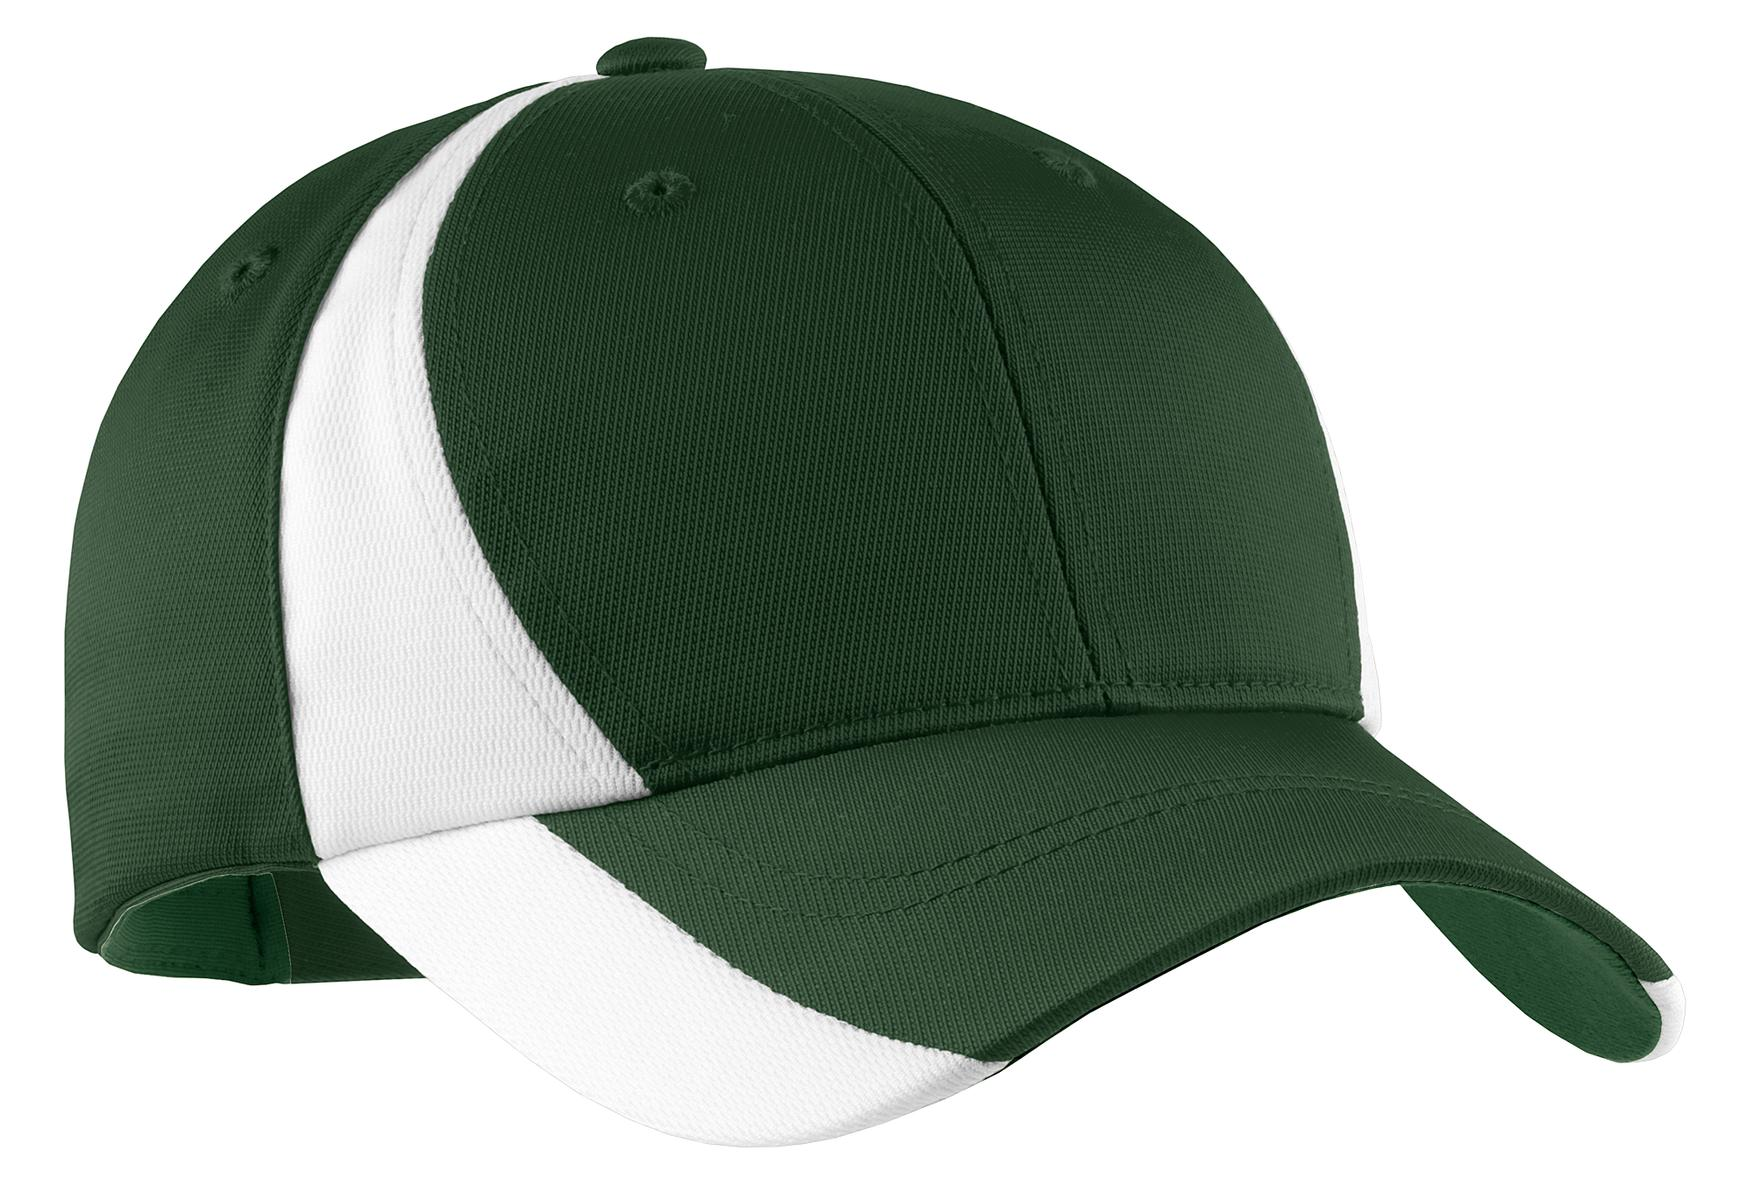 Sport-Tek ®  Dry Zone ®  Nylon Colorblock Cap. STC11 - Forest Green/White